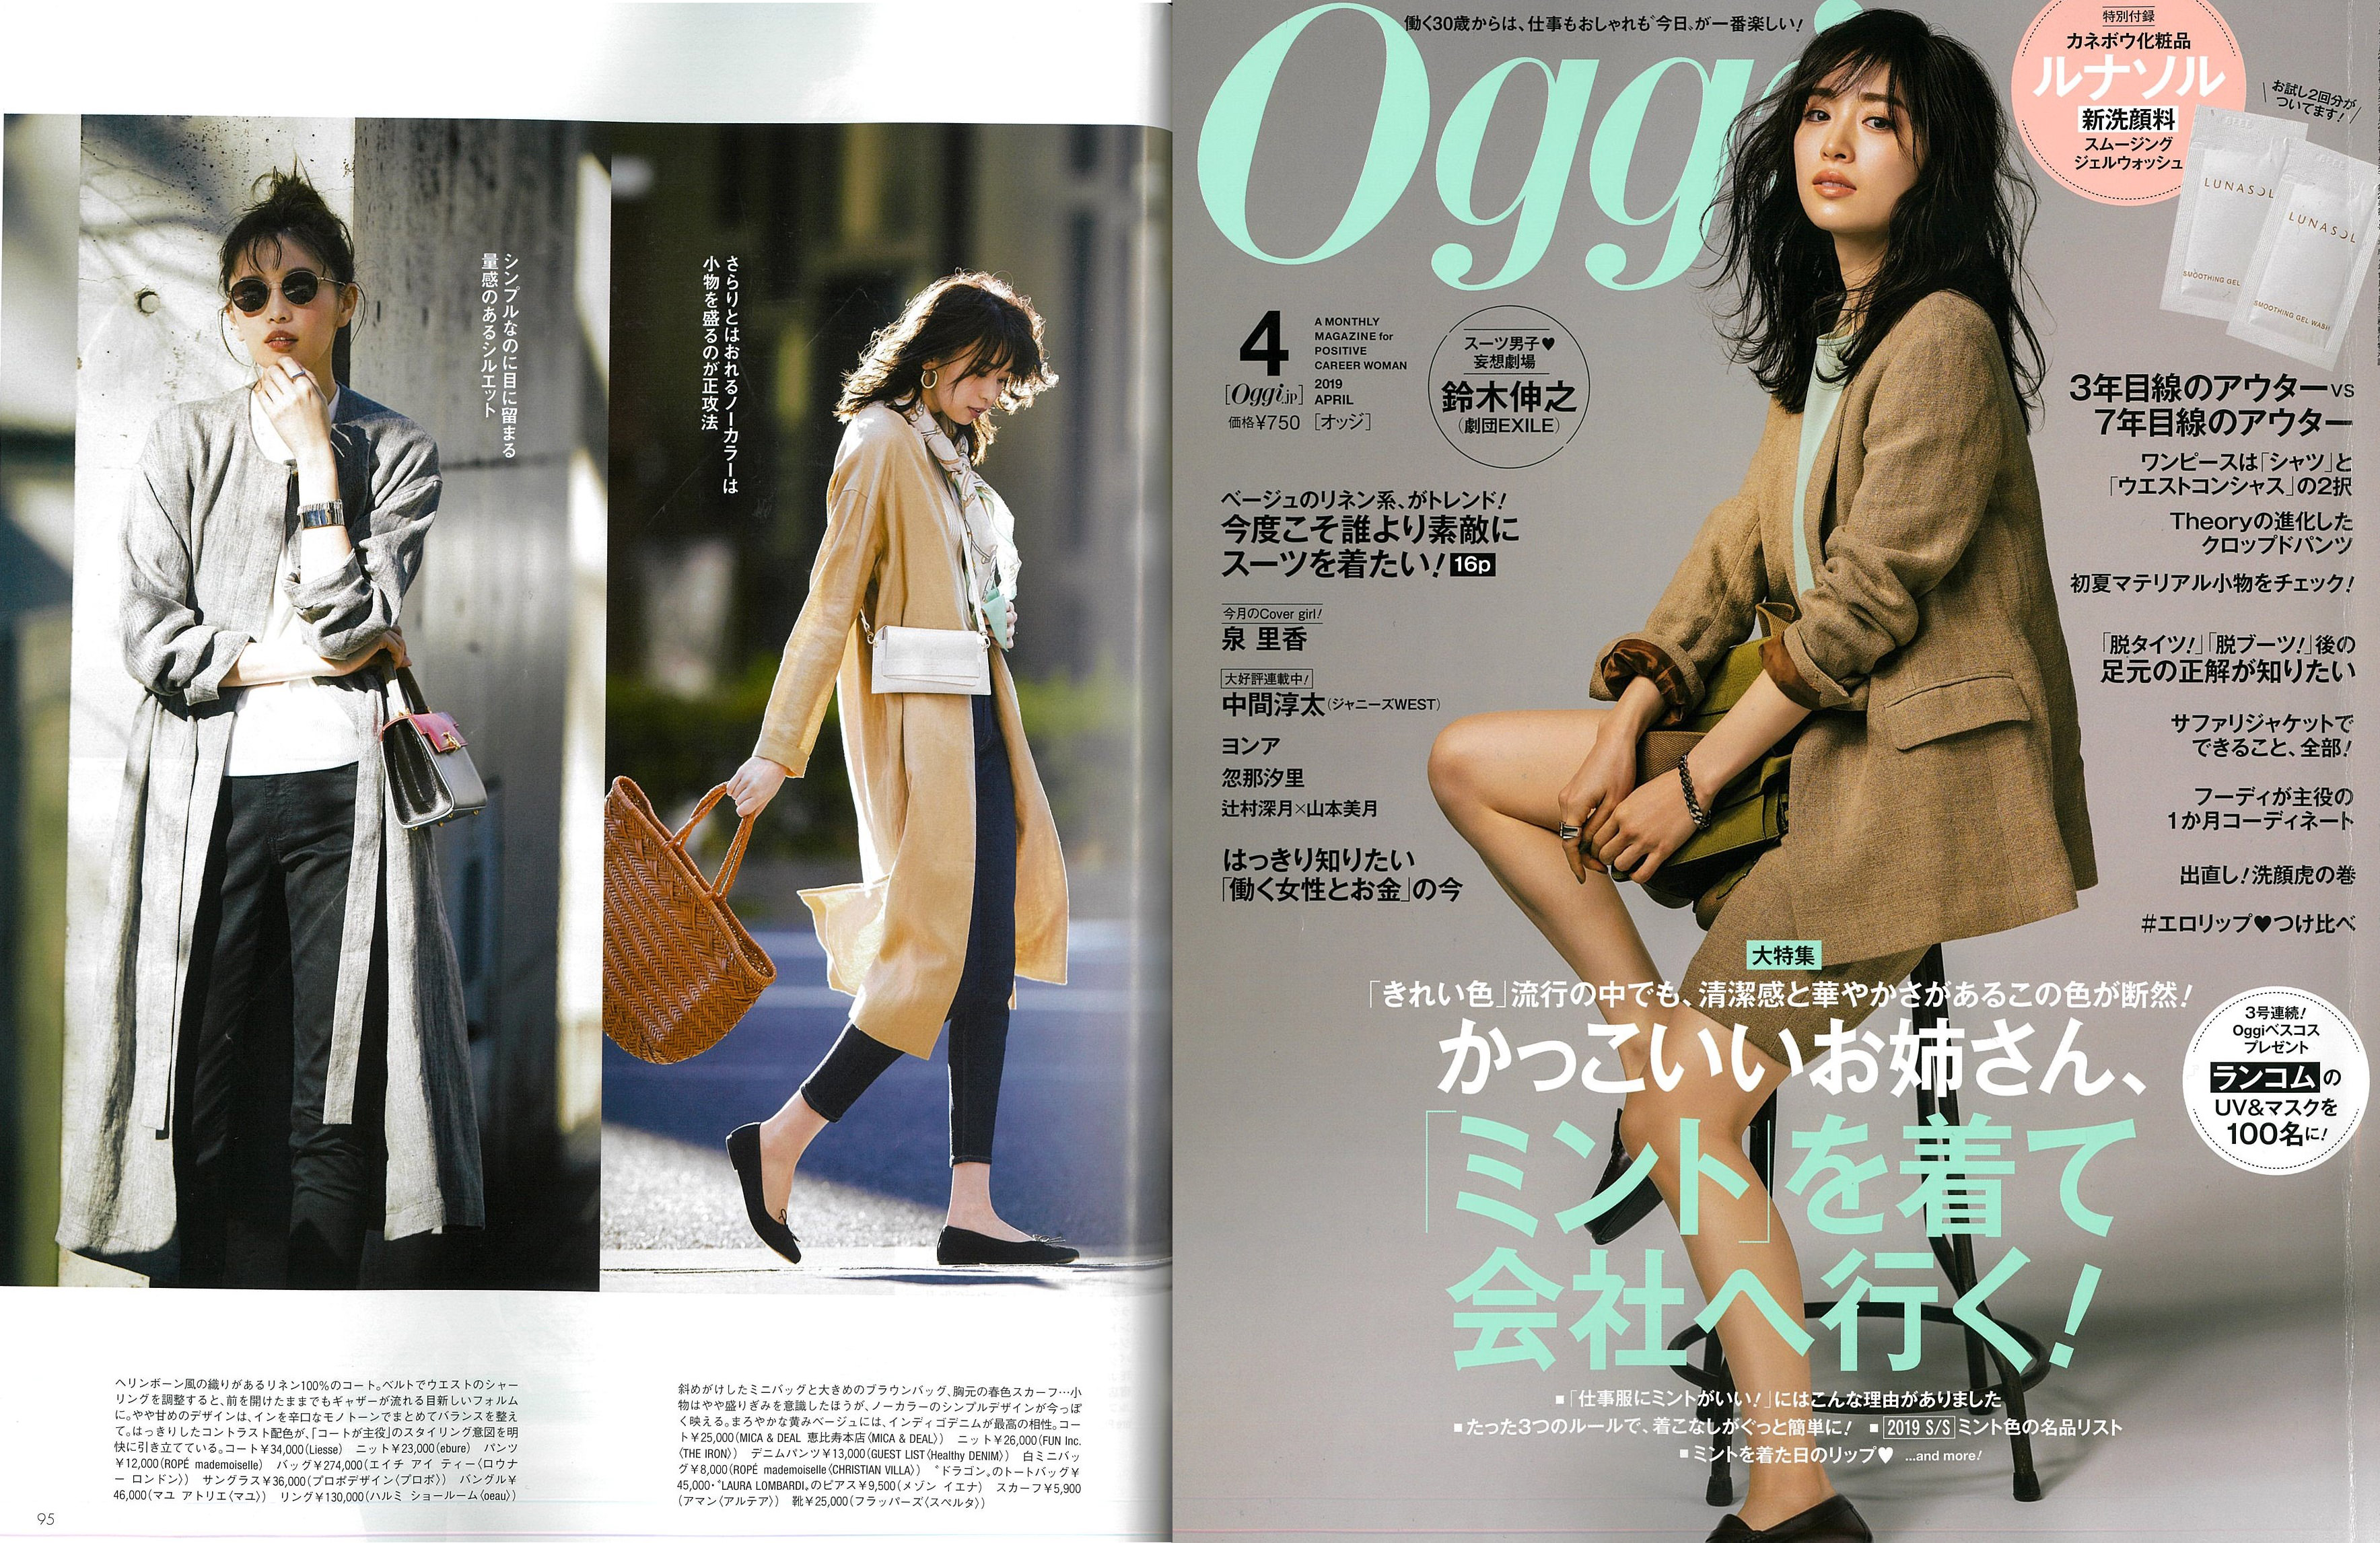 Launer London handbag is introduced in Oggi magazine.